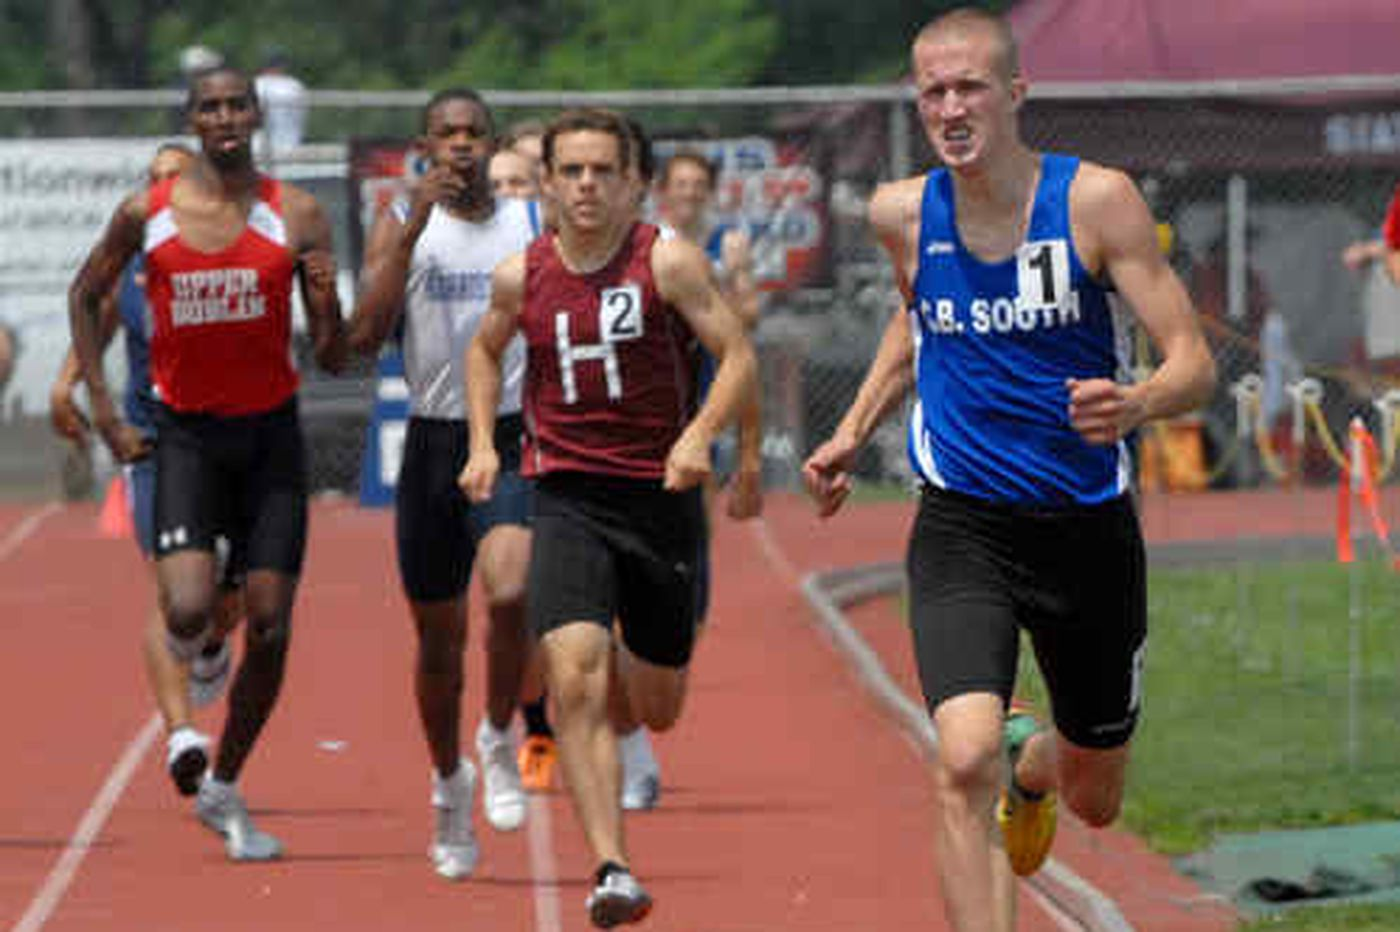 For C.B. South's Mallon, 800 mark not quite enough